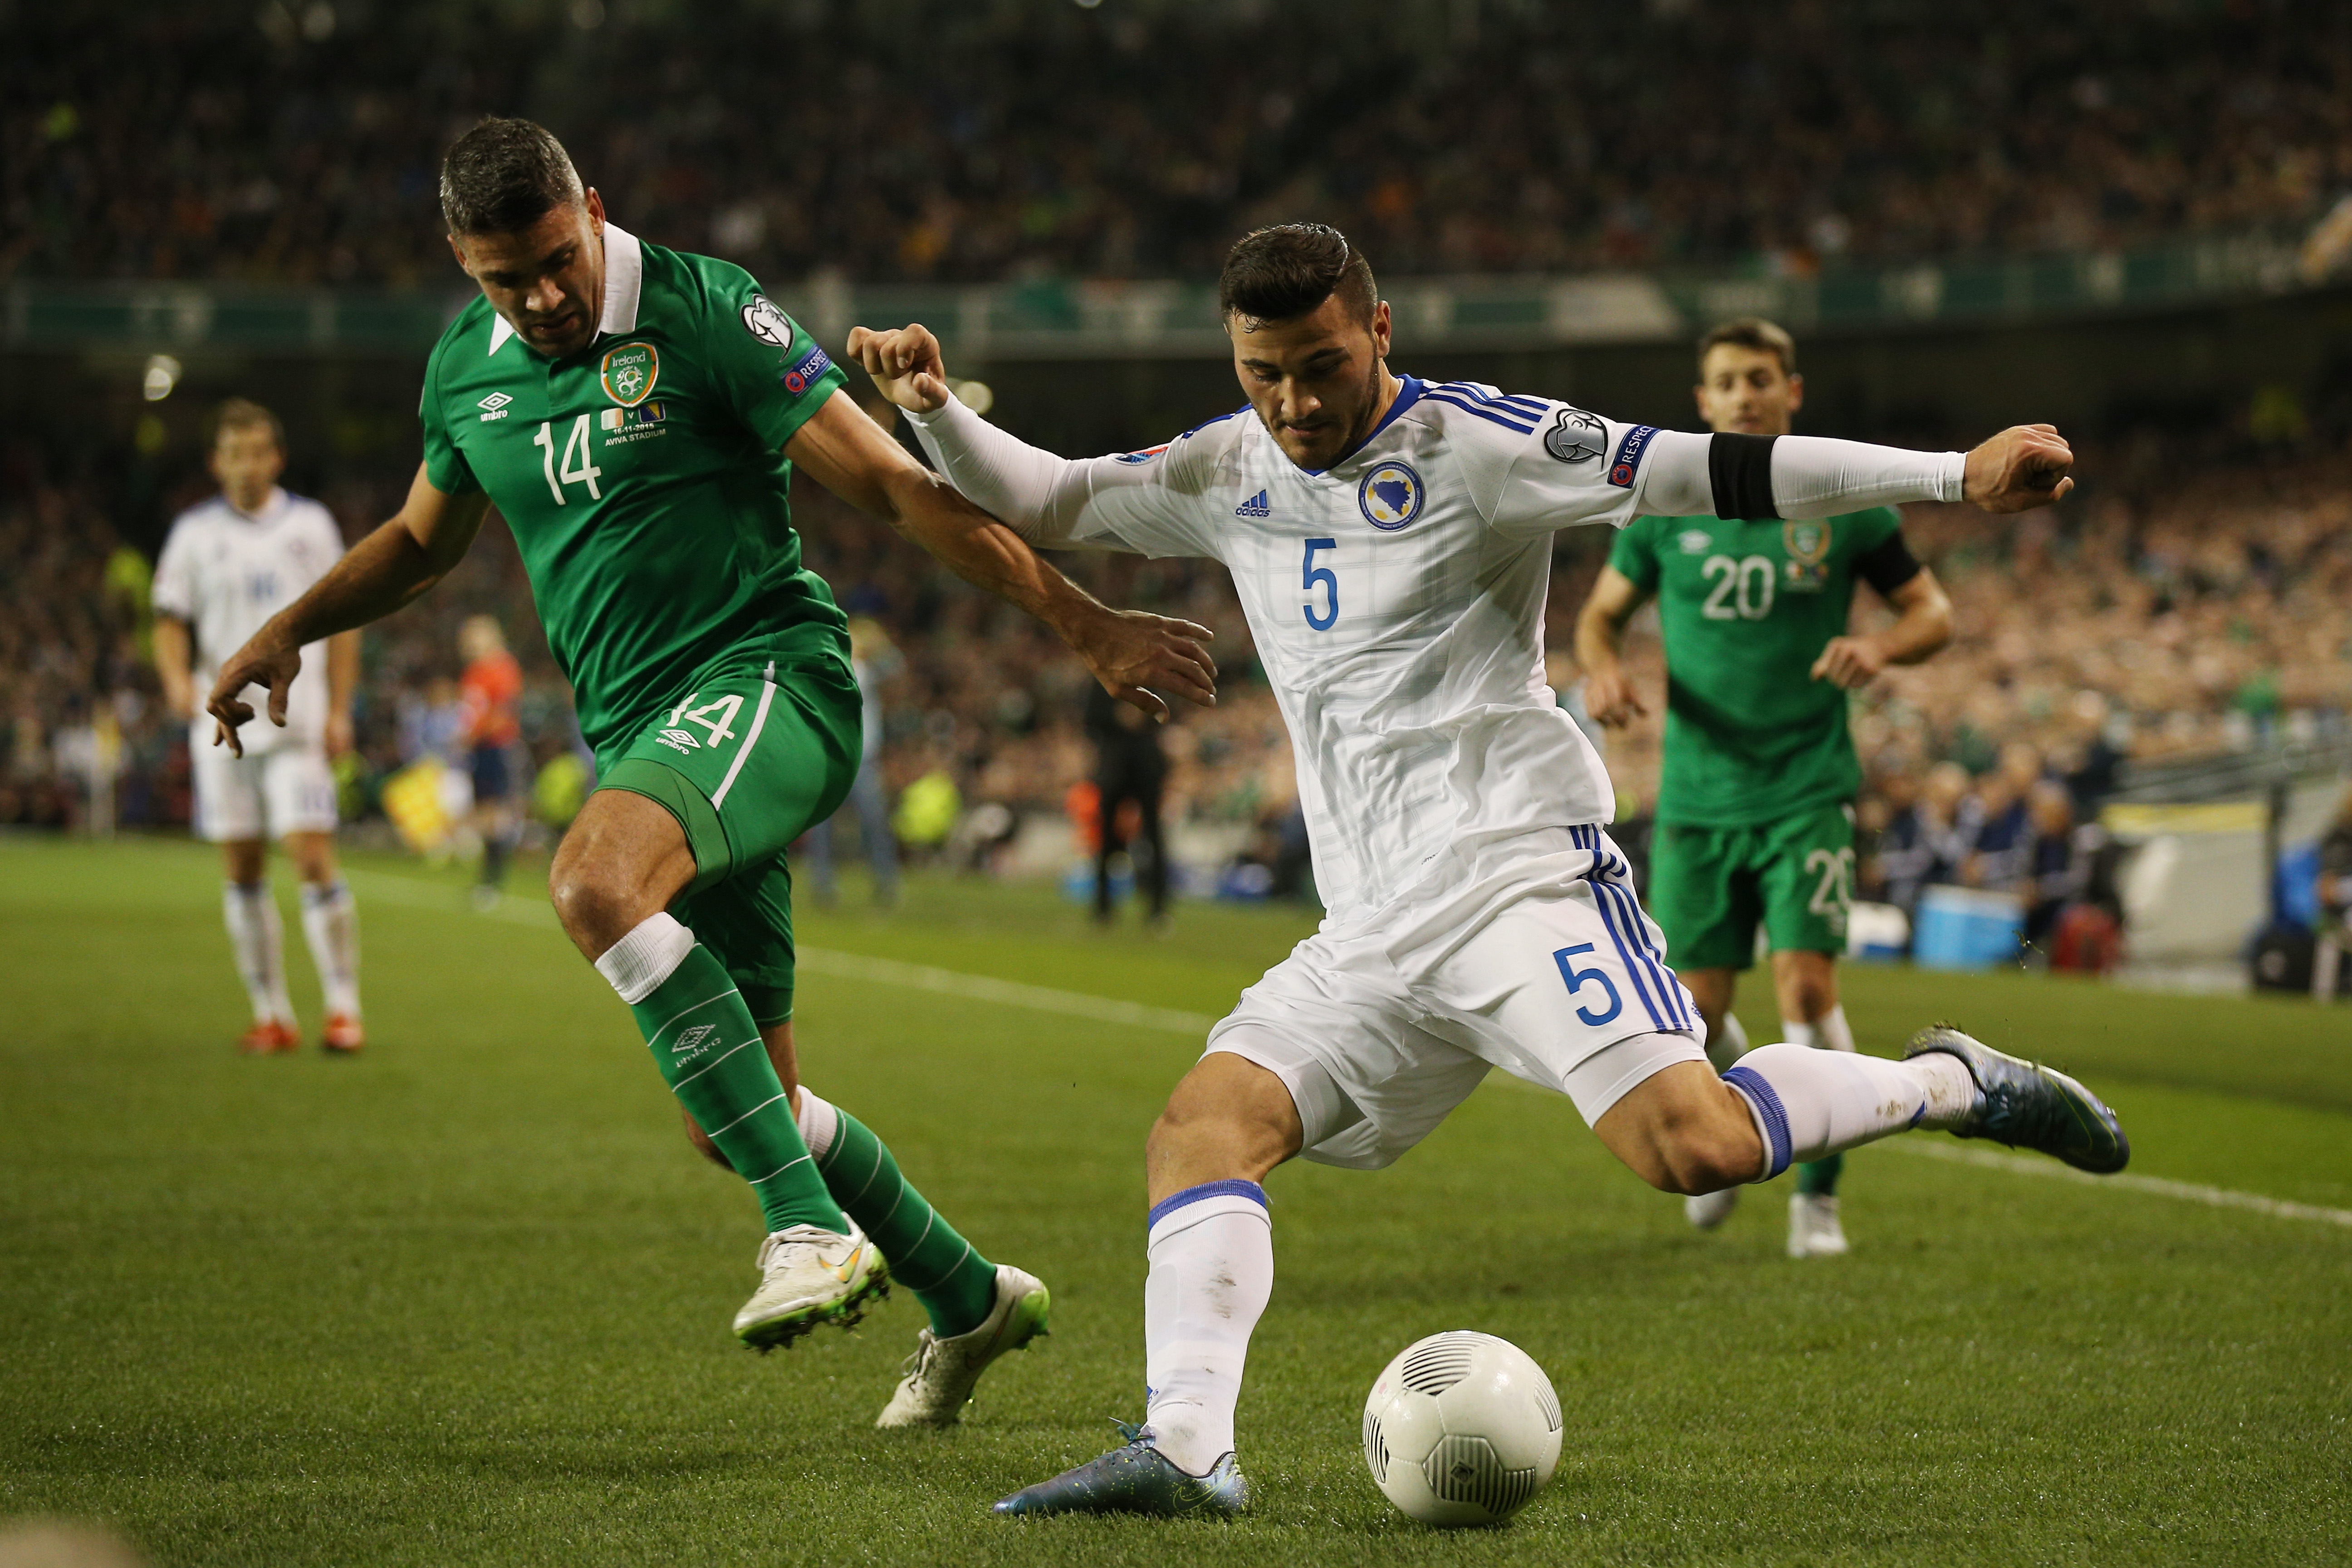 497401364-republic-of-ireland-v-bosnia-and-herzegovina-uefa-euro-2016-qualifier-play-off-second-leg.jpg